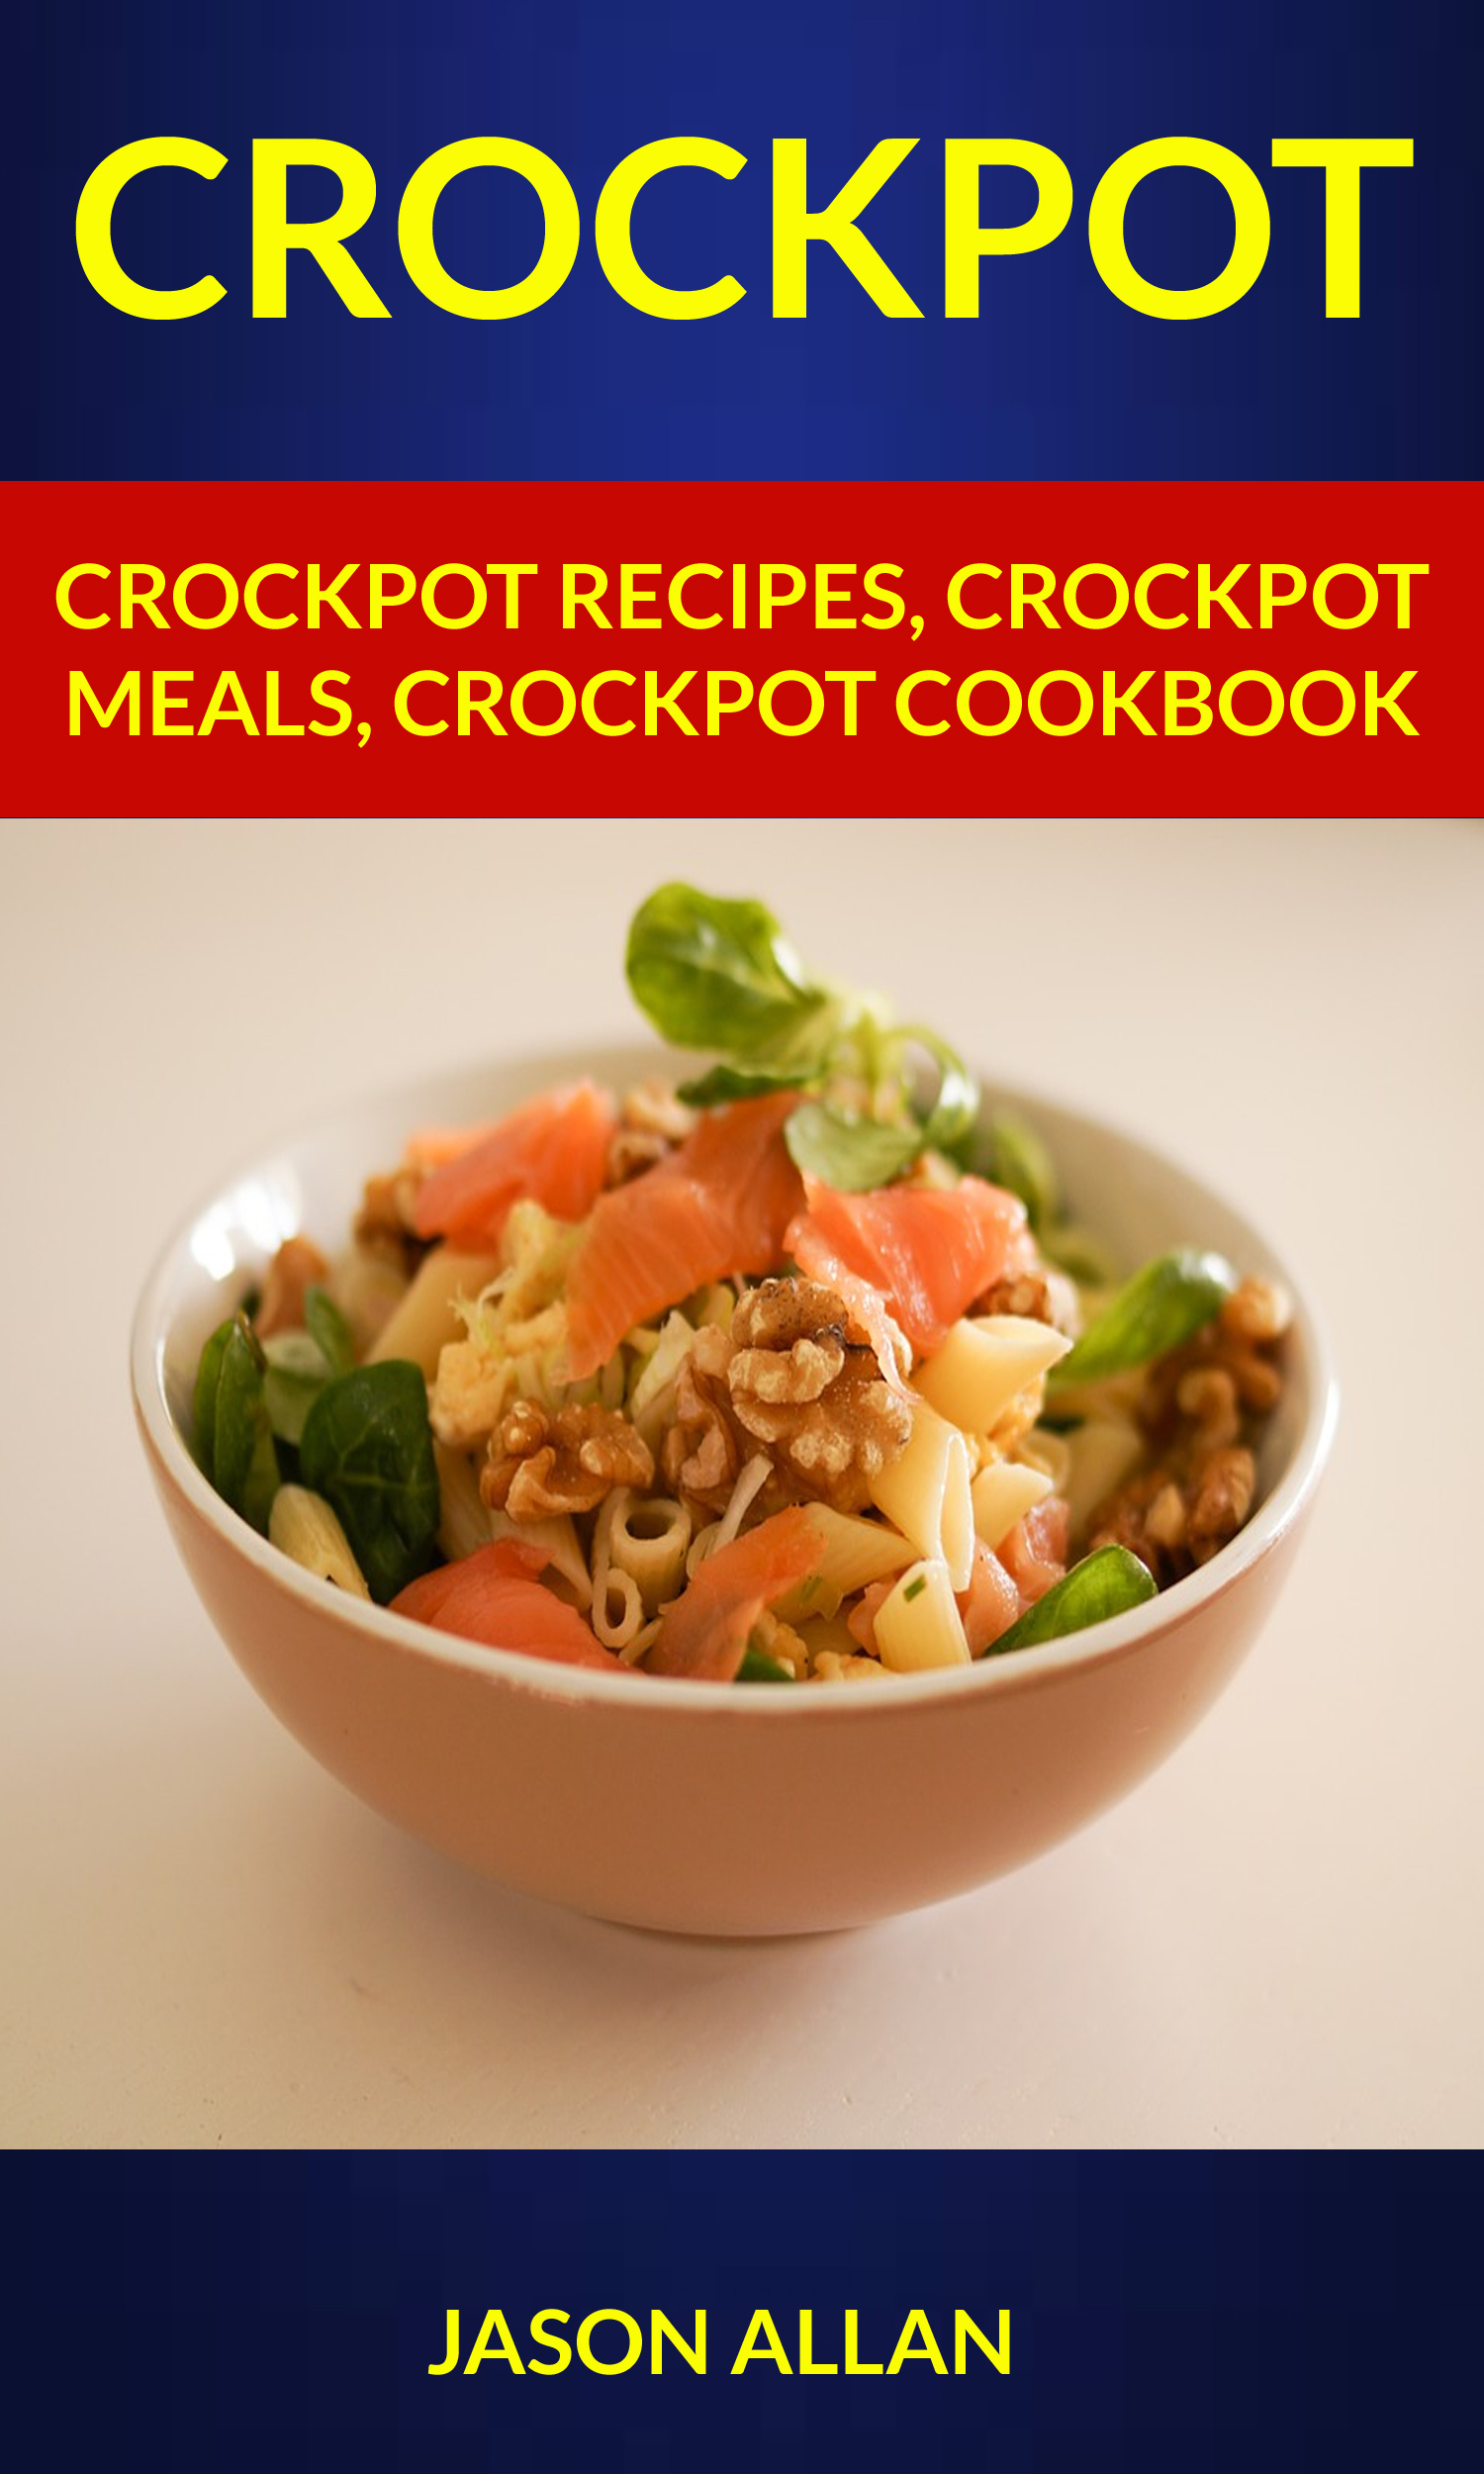 Crockpot: crockpot recipes, crockpot meals, crockpot cookbook